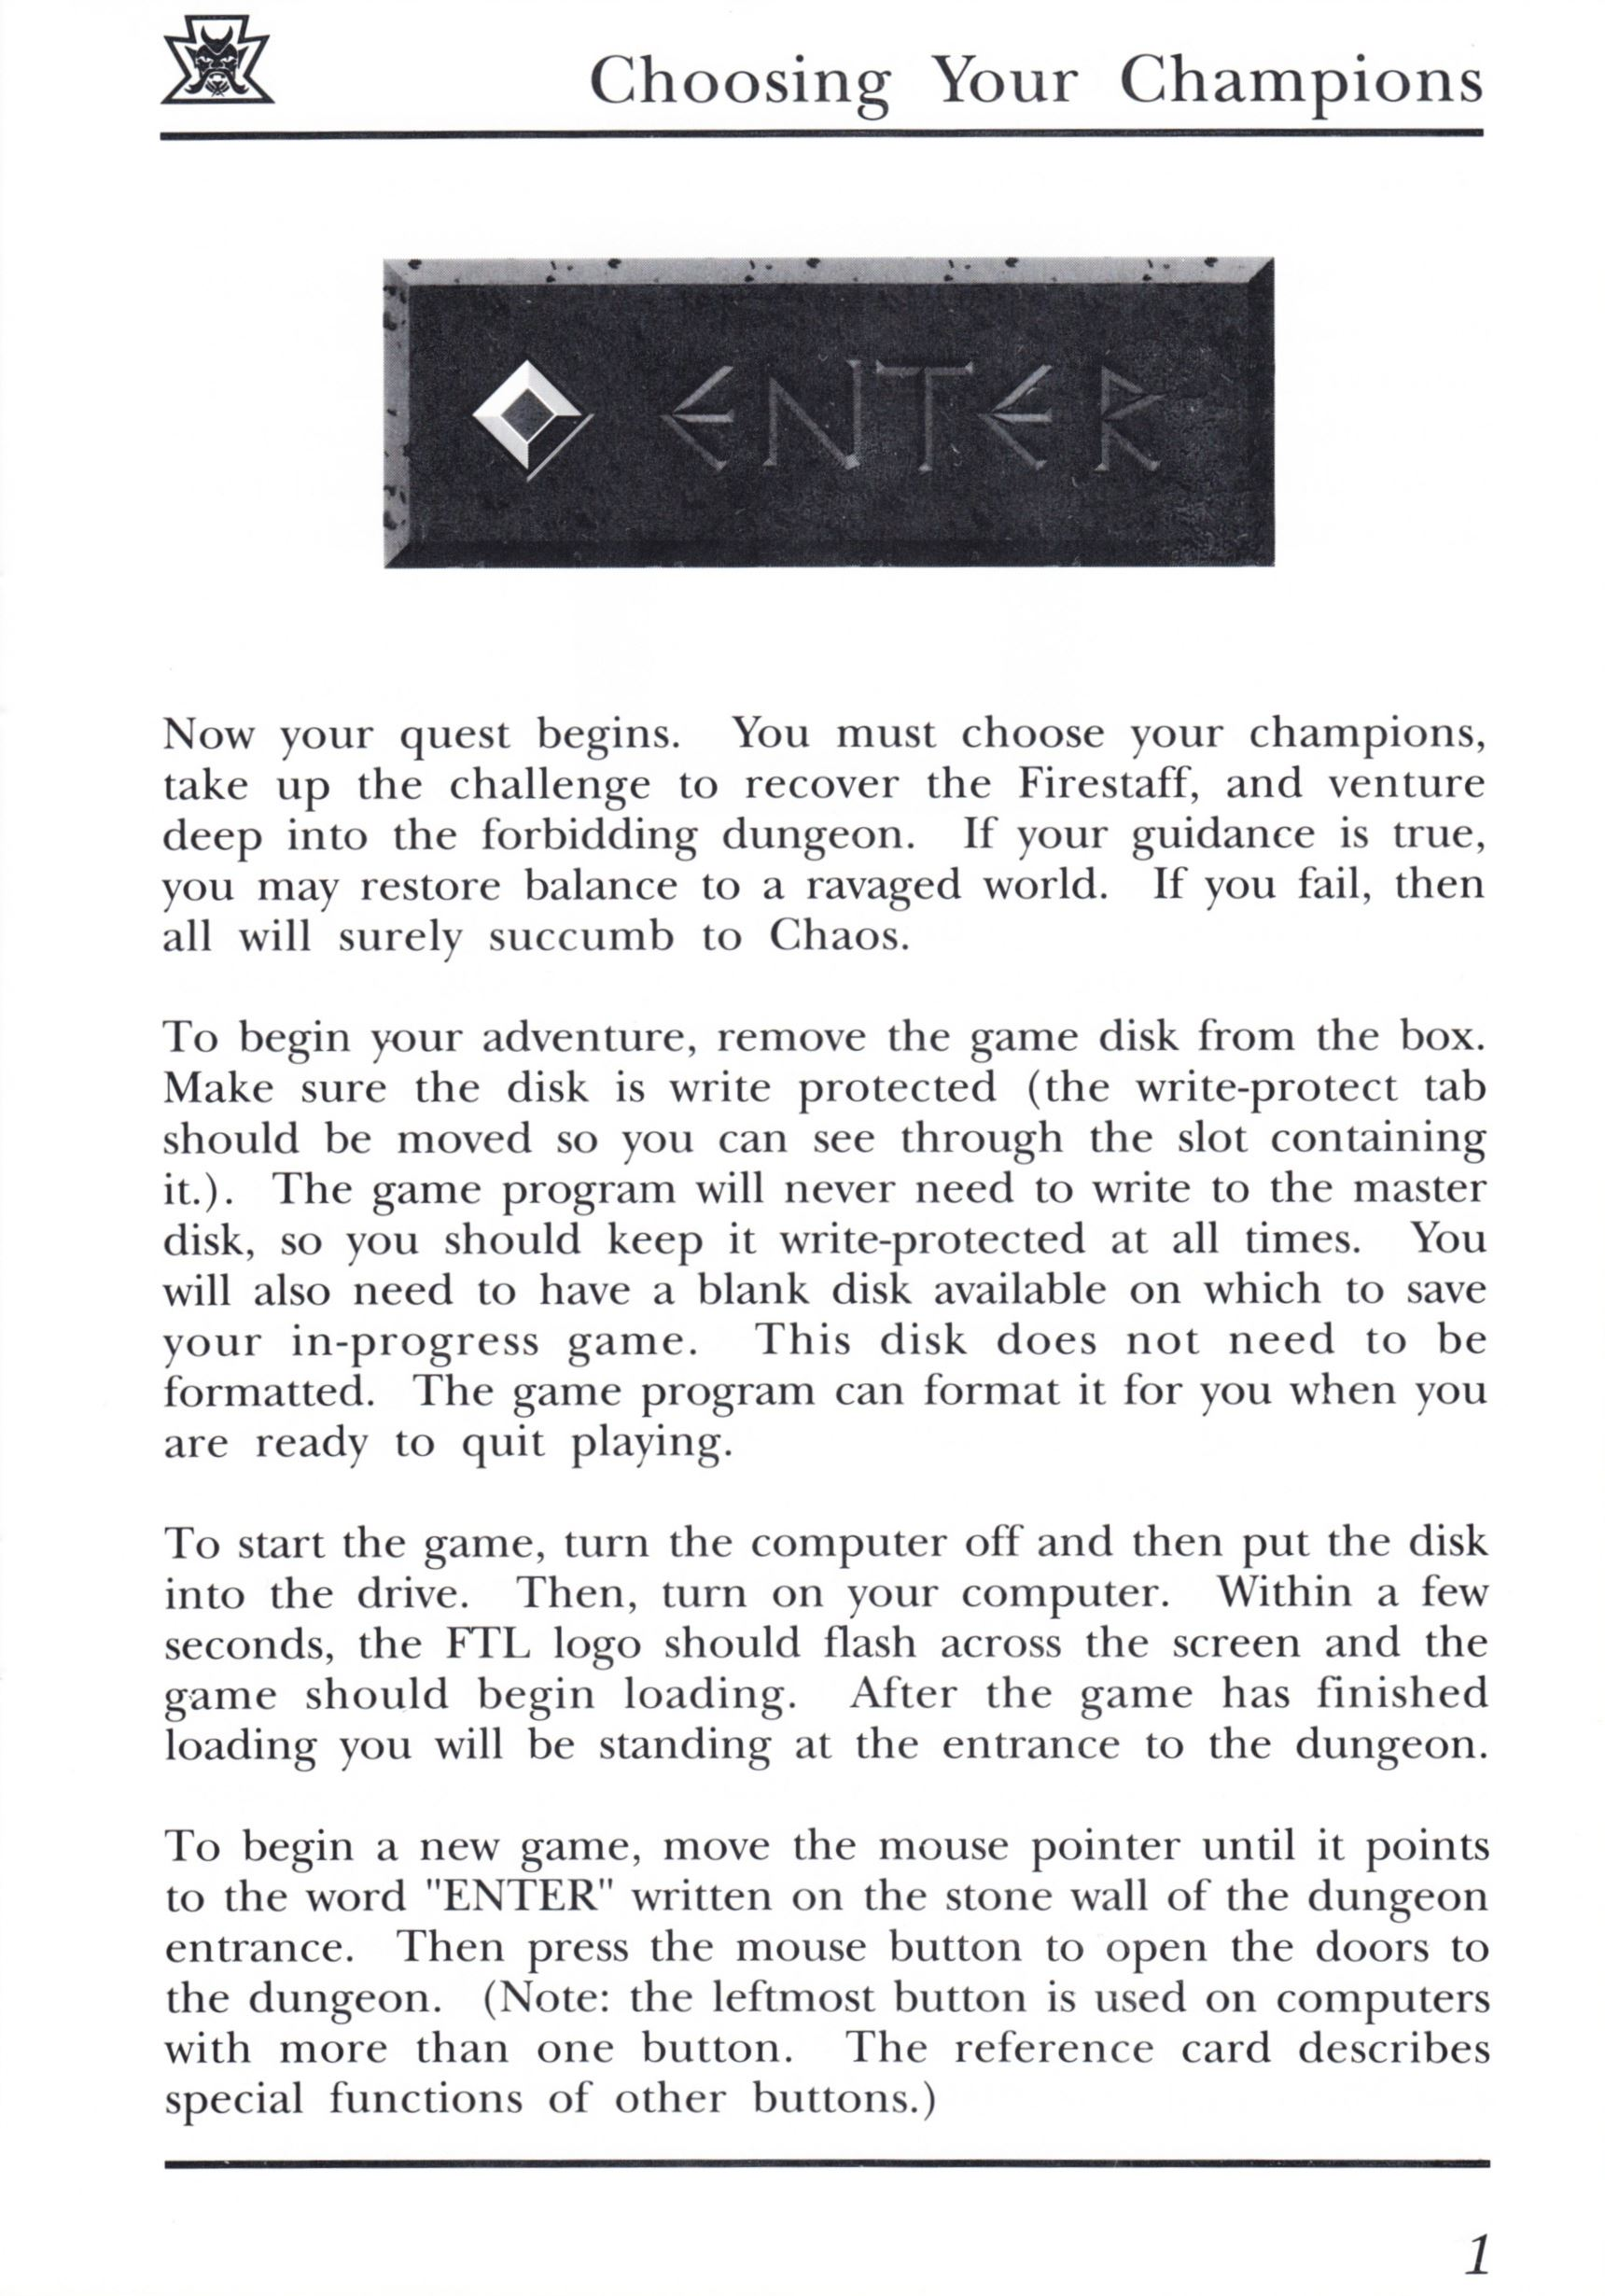 Game - Dungeon Master - UK - PC - Psygnosis - Manual - Page 021 - Scan